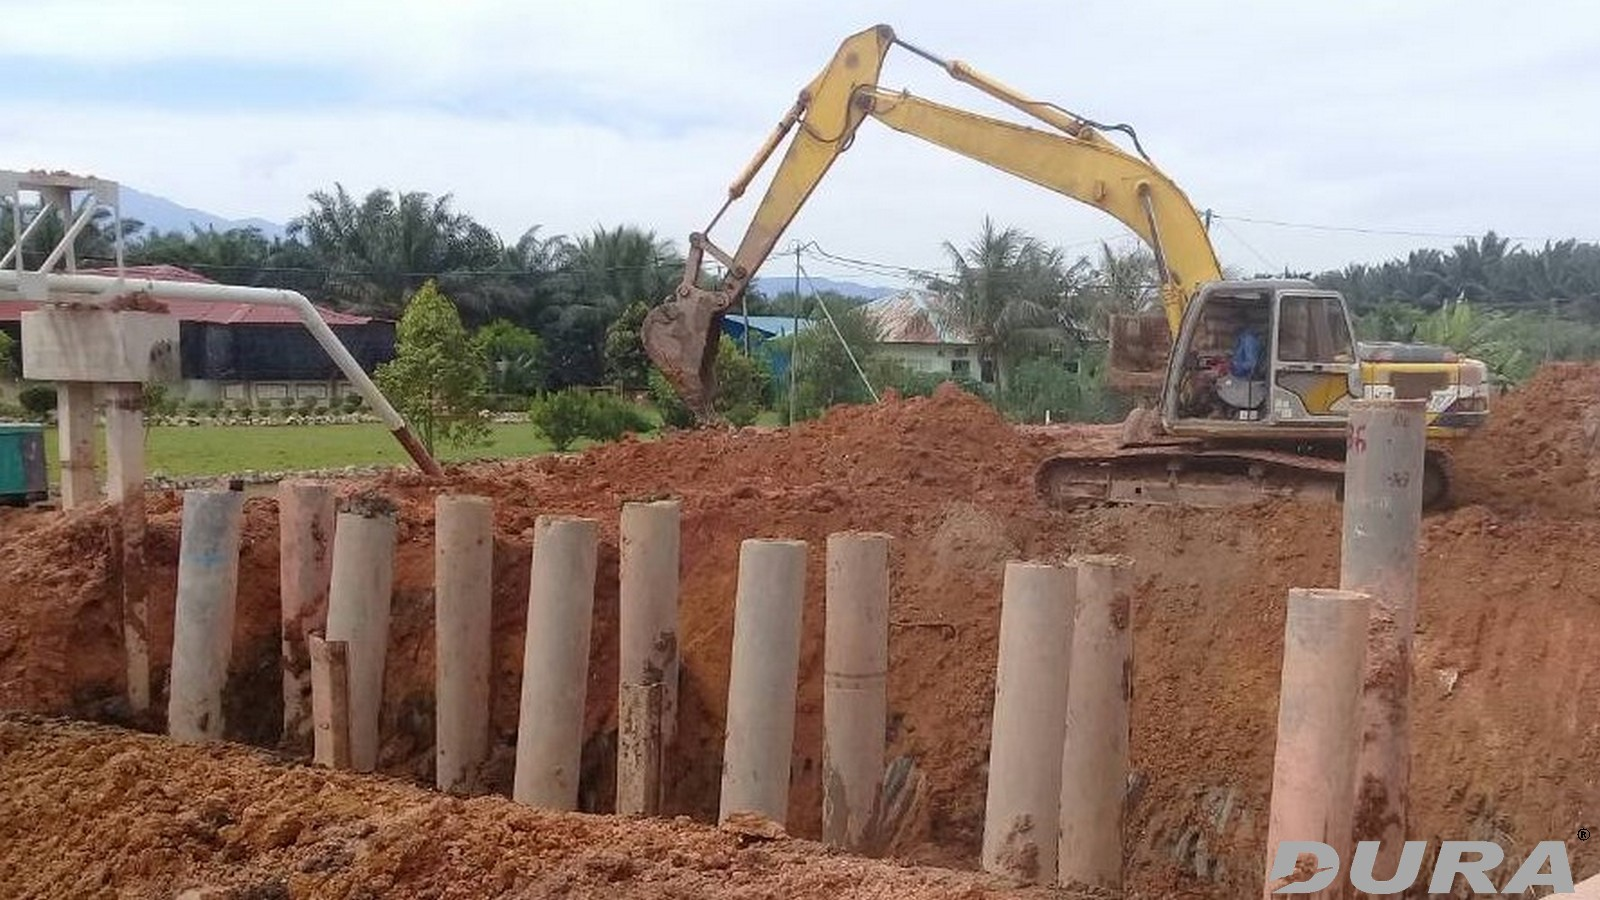 600mm dia, spun piles used as foundation.